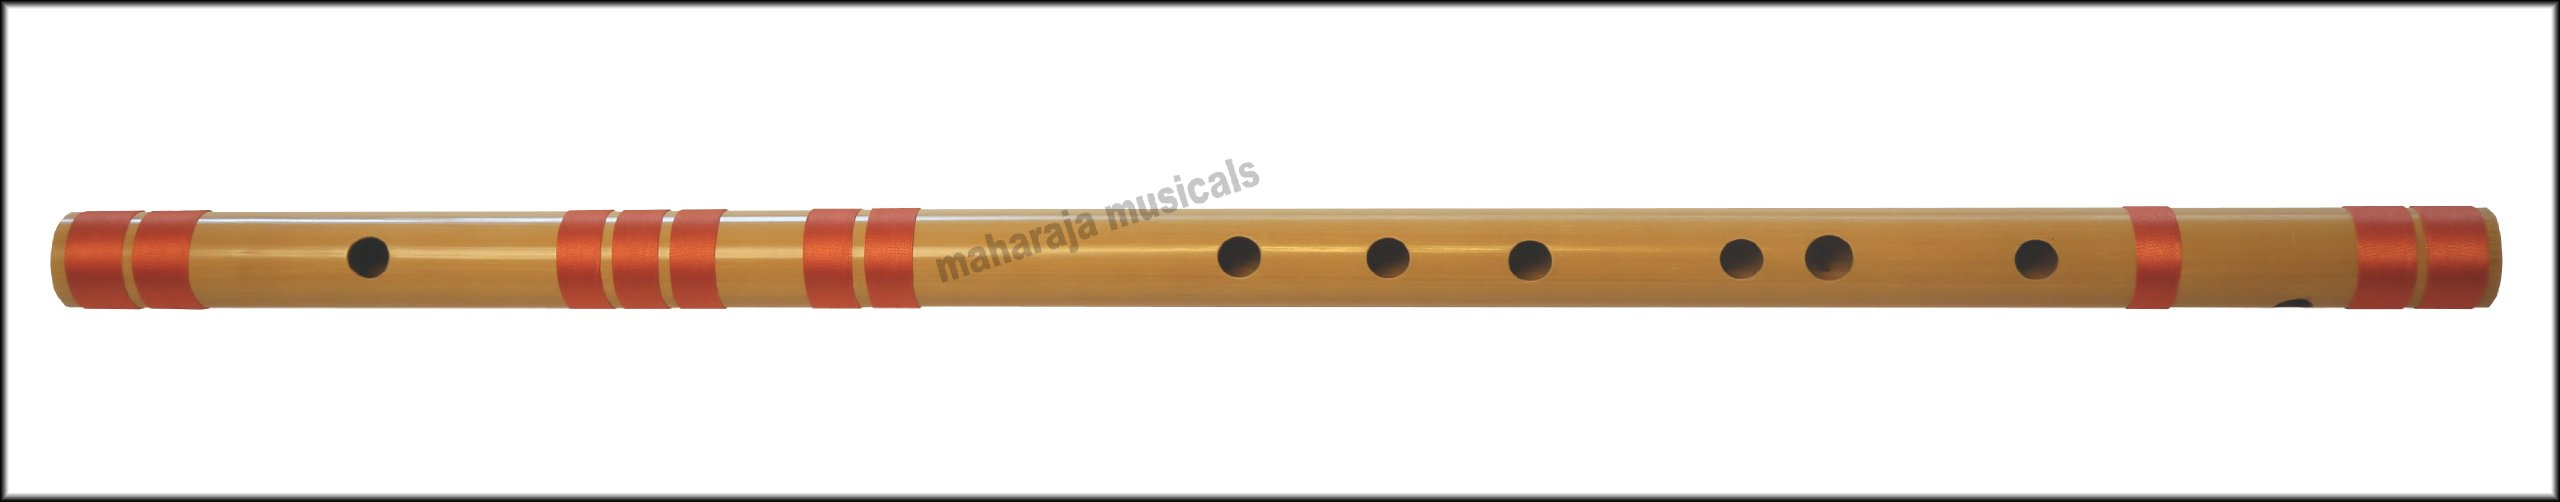 Indian Flute Bansuri, Scale F Sharp Bass 26.5 Inches, Maharaja Musicals, Includes Nylon Pipe Bag, Hindustani Bansuri, Concert Quality, Accurately Tuned, Bamboo Flute Indian (PDI-CGA)